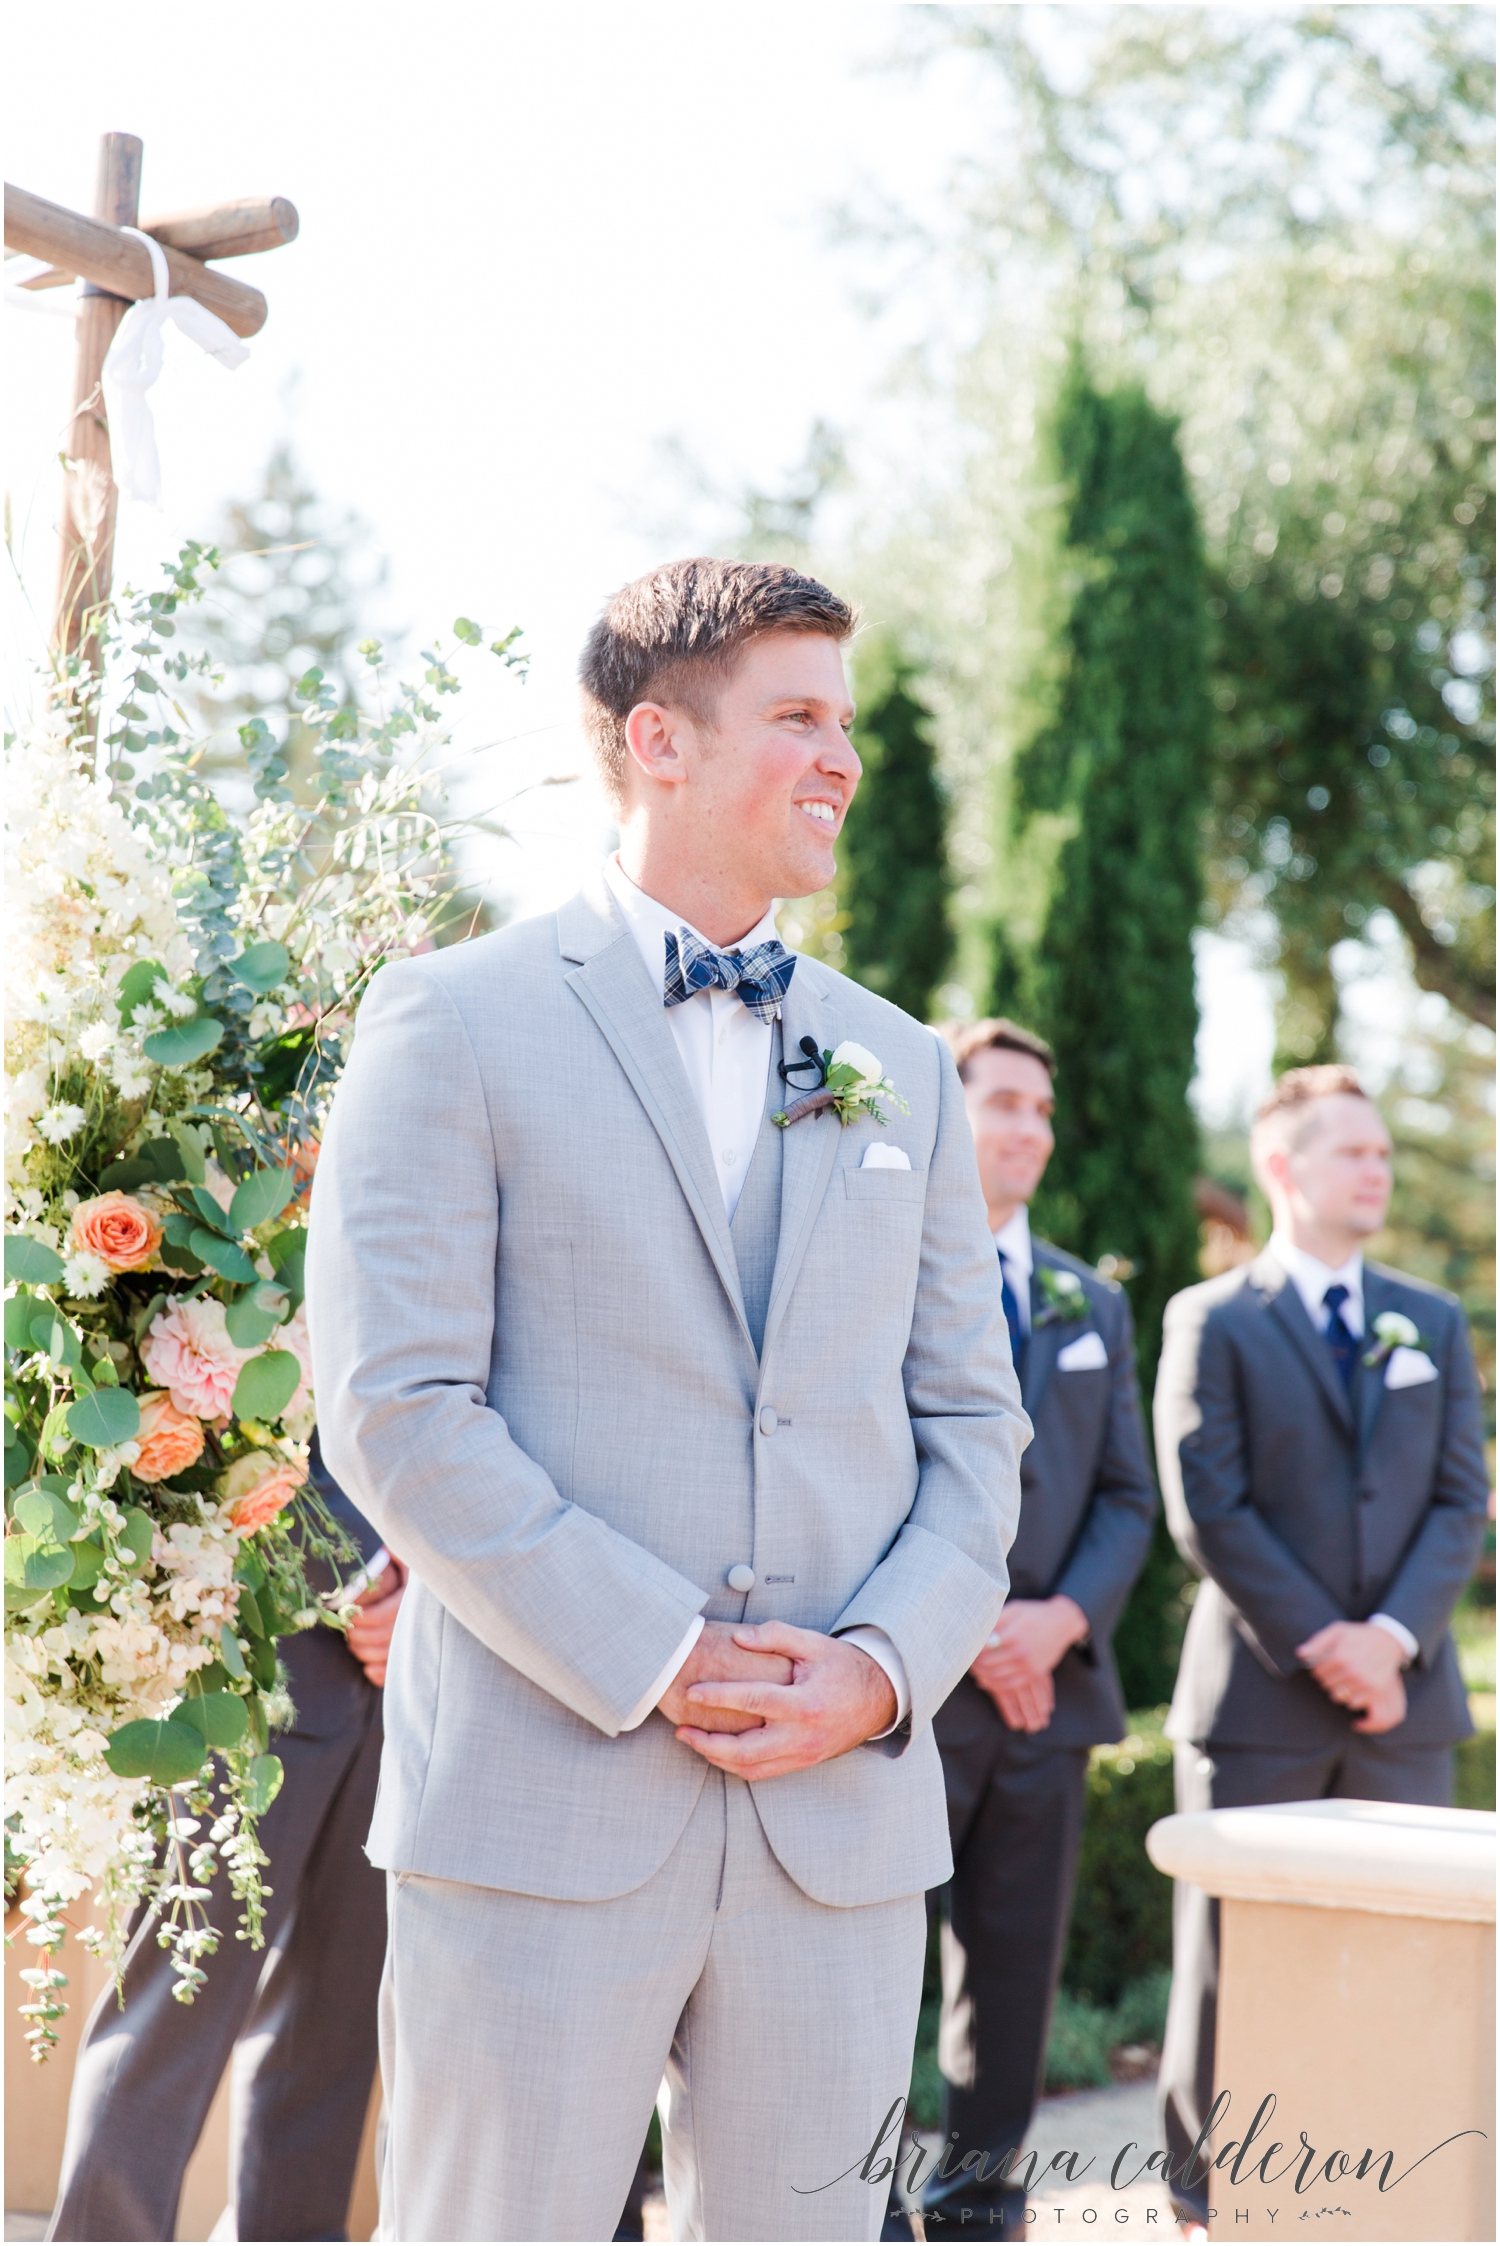 Regale Winery Wedding photos by Briana Calderon Photography_0666.jpg